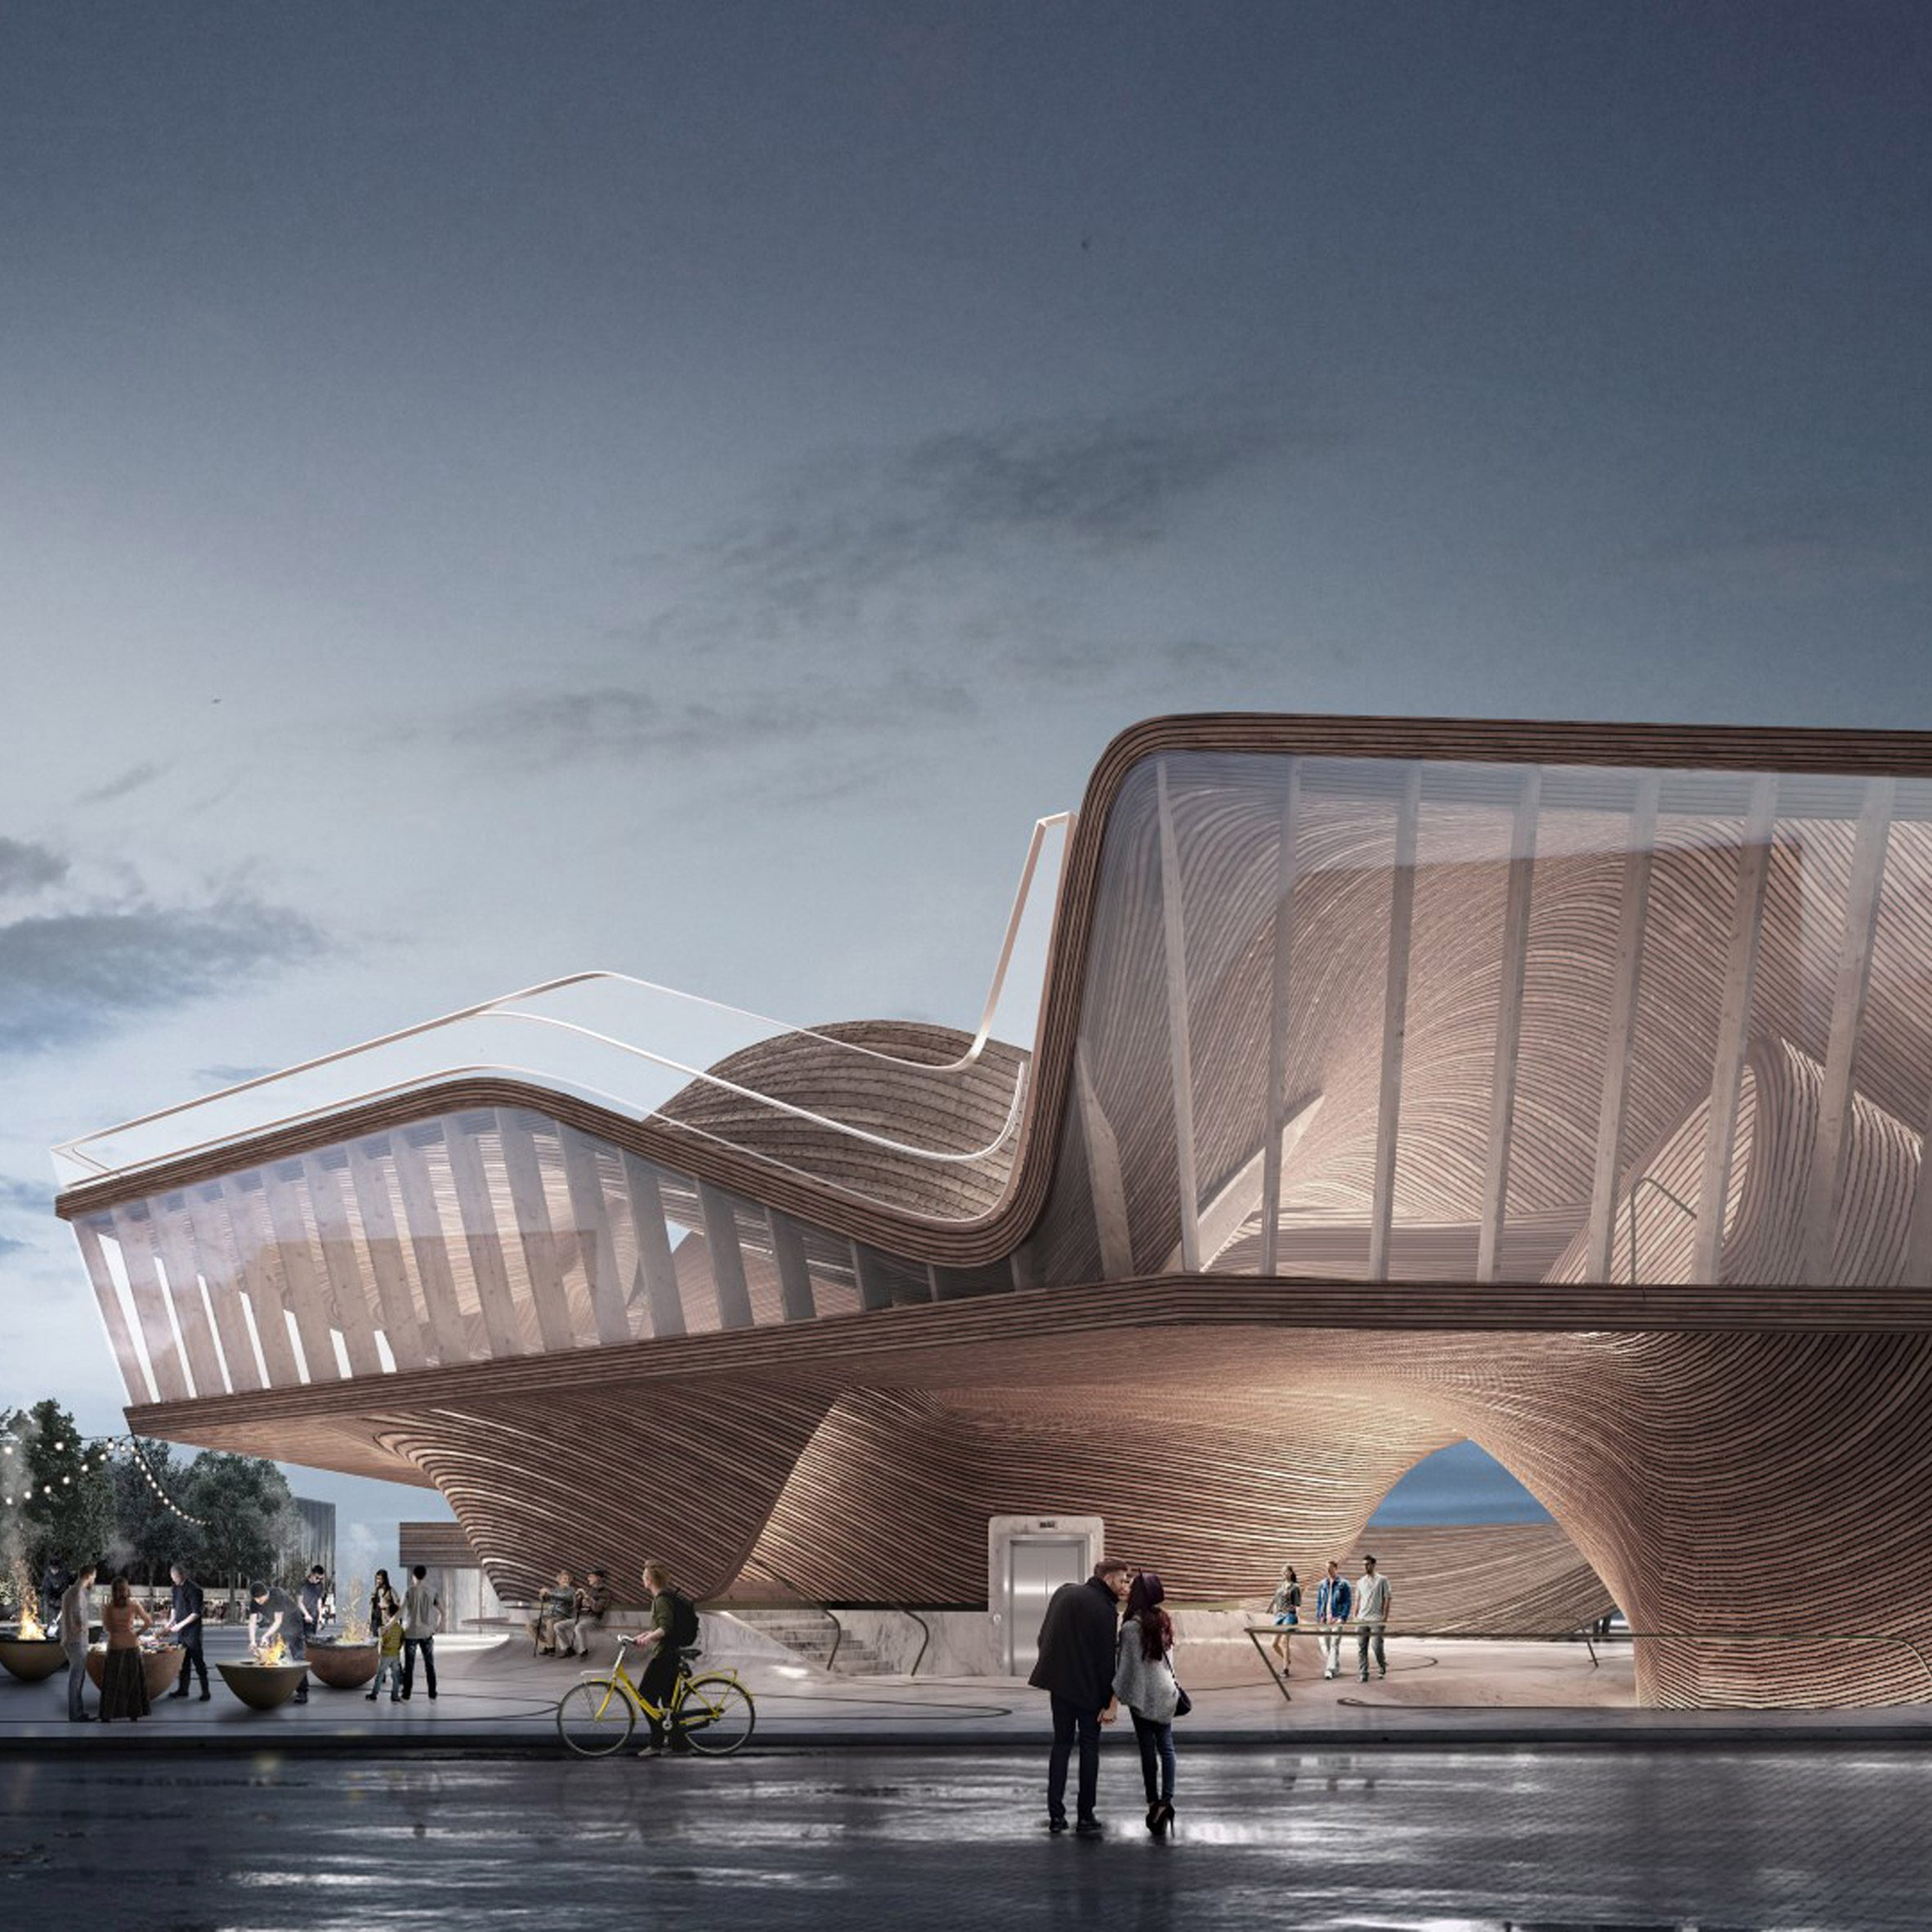 Project by a former architecture student at University of East London